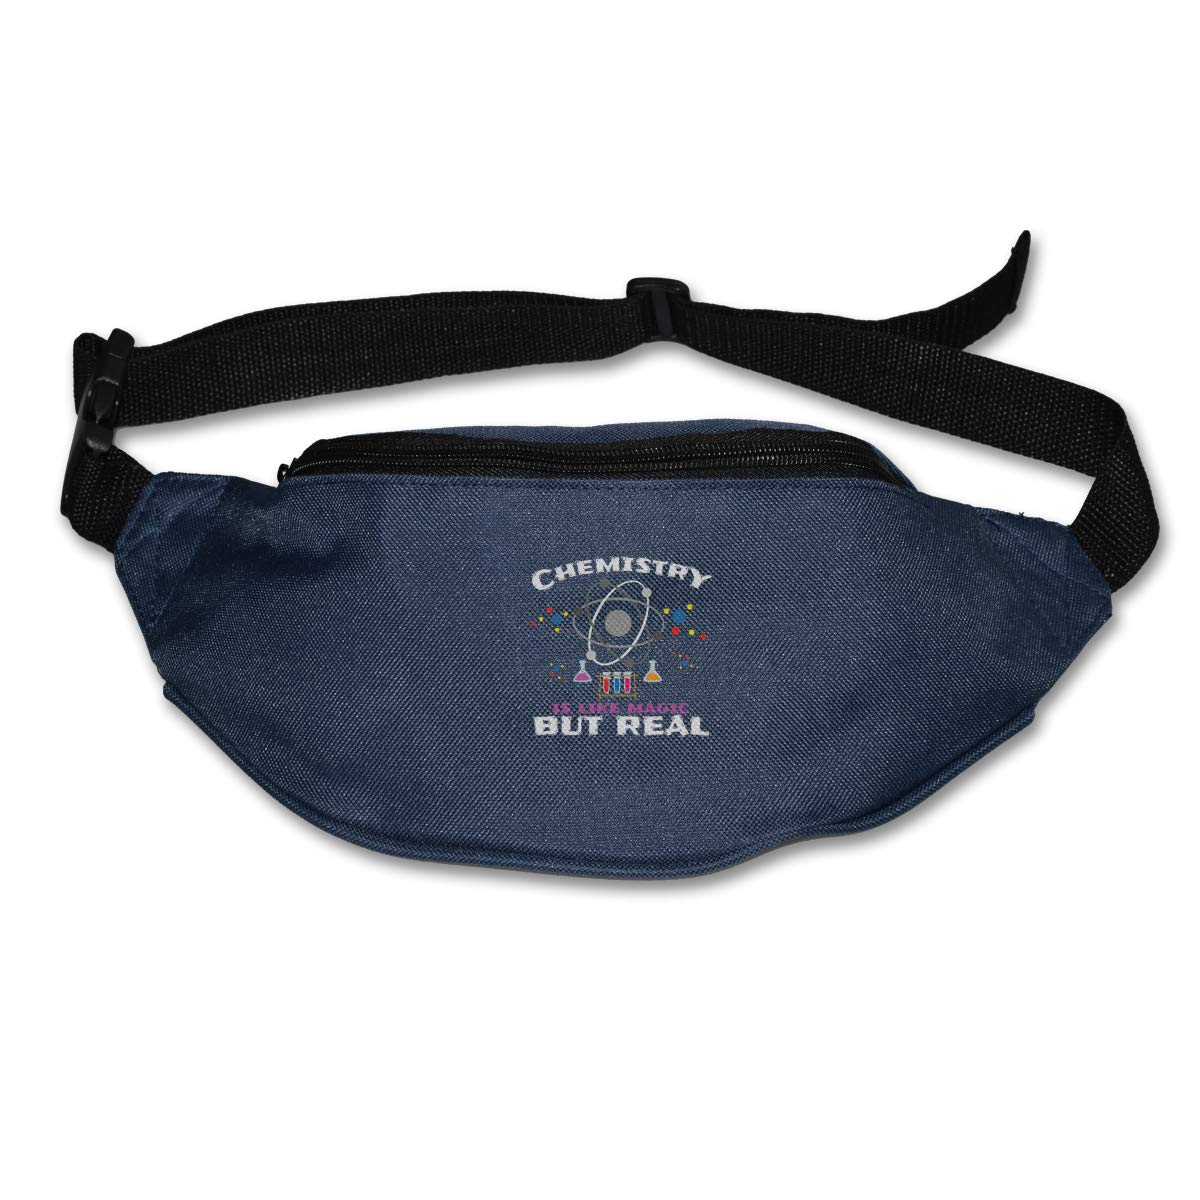 Science Is Like Magic But Real Sport Waist Bag Fanny Pack Adjustable For Hike